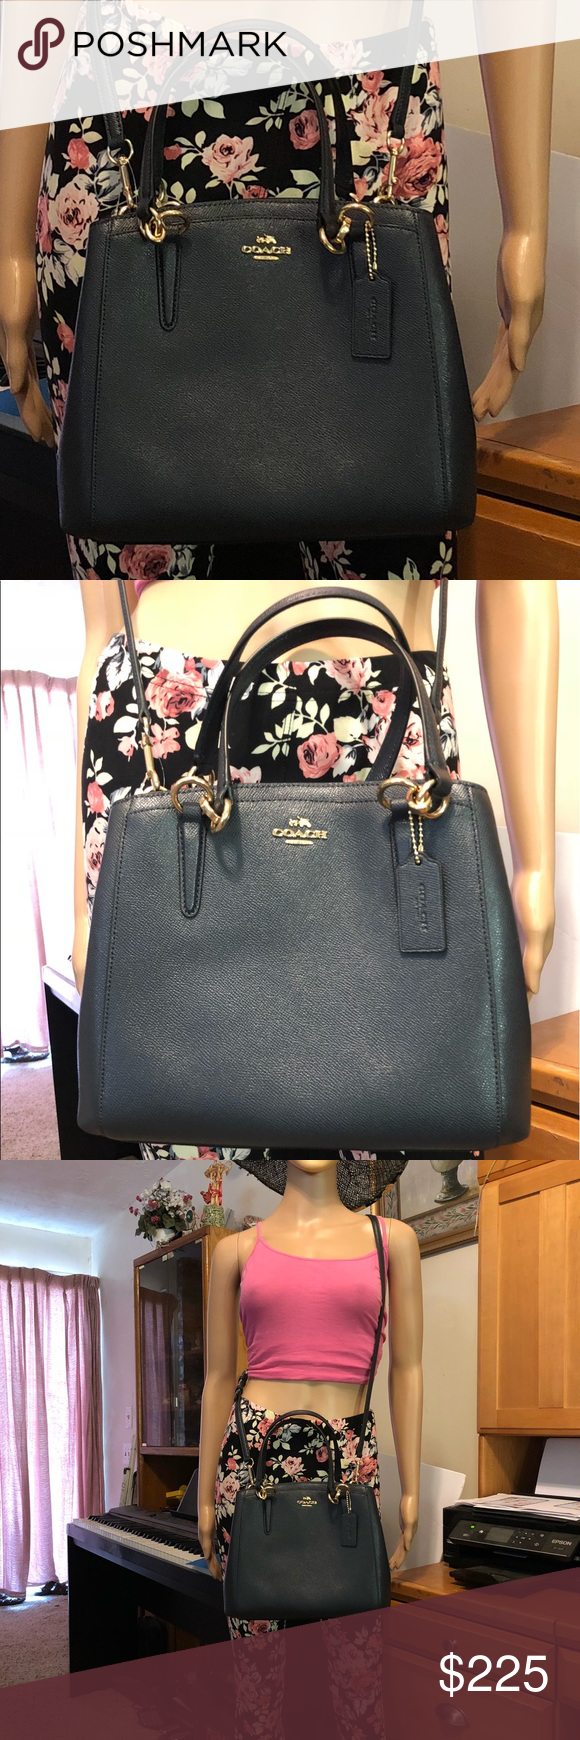 ef3204a785c19 COACH Crossgrain Leather Minetta Crossbody F57847 Color  Midnight  Crossgrain leather with silver toned hardware Top